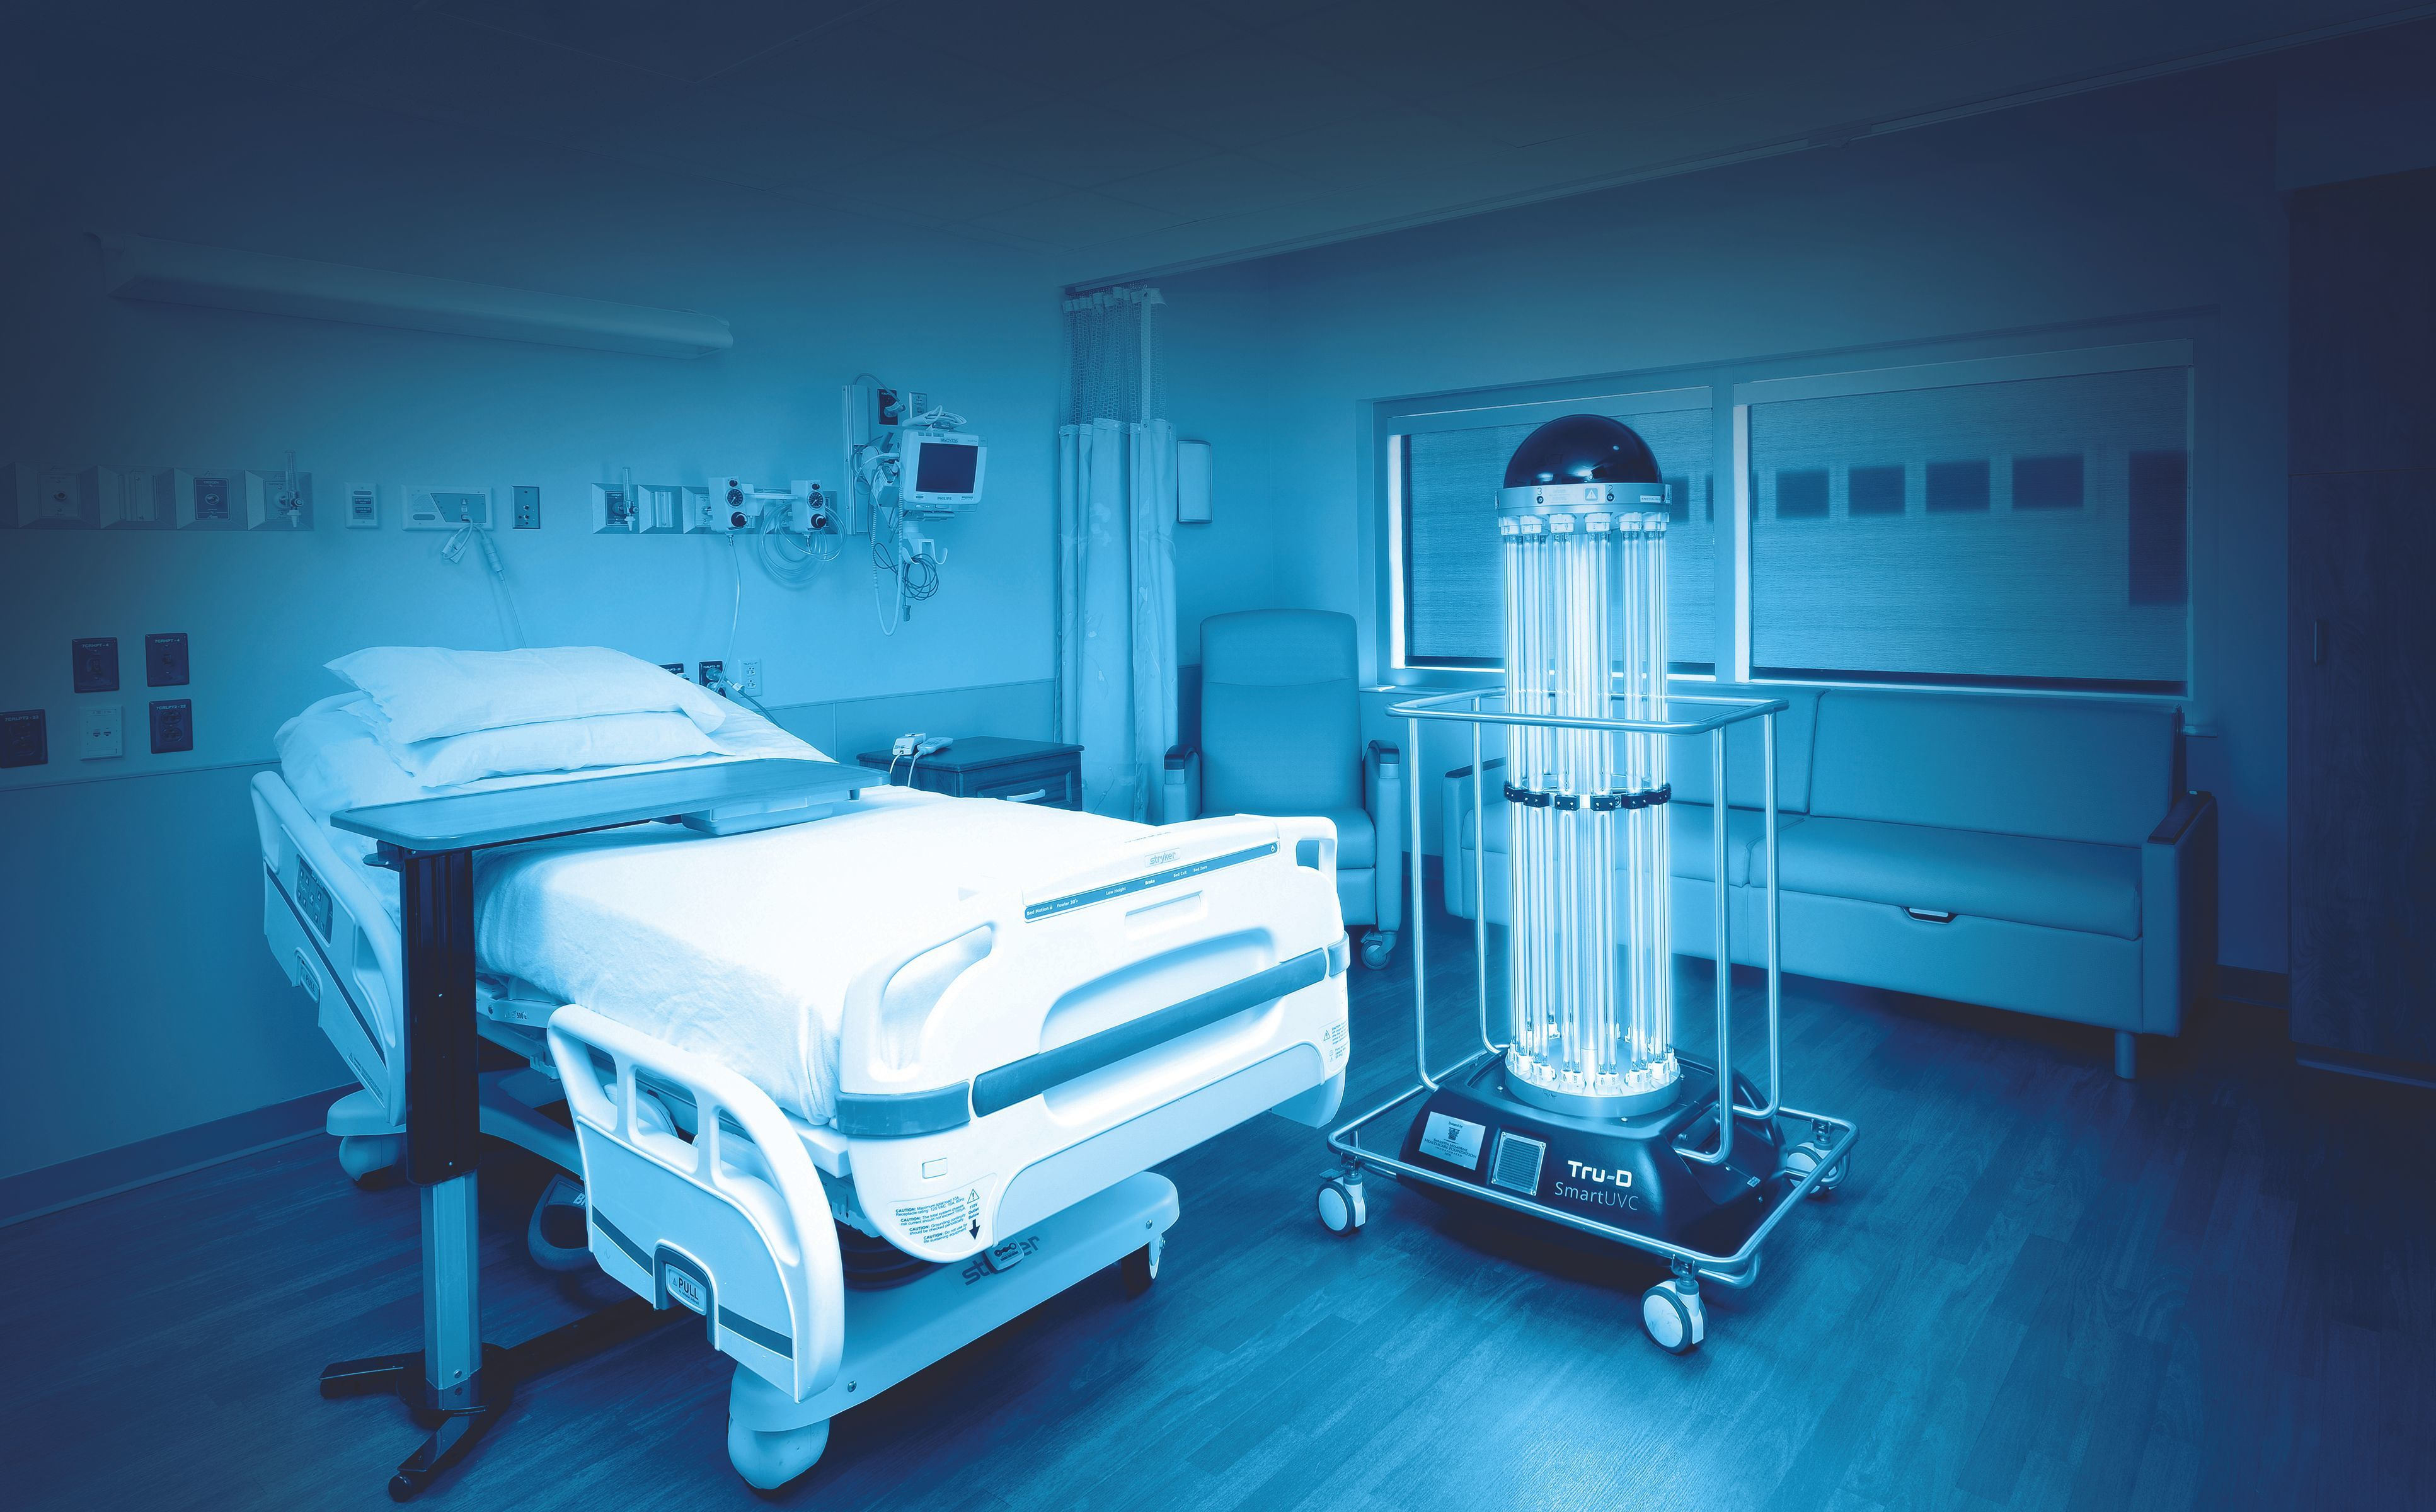 Southwest Healthcare Services deploys UVC disinfection robot to fight infections